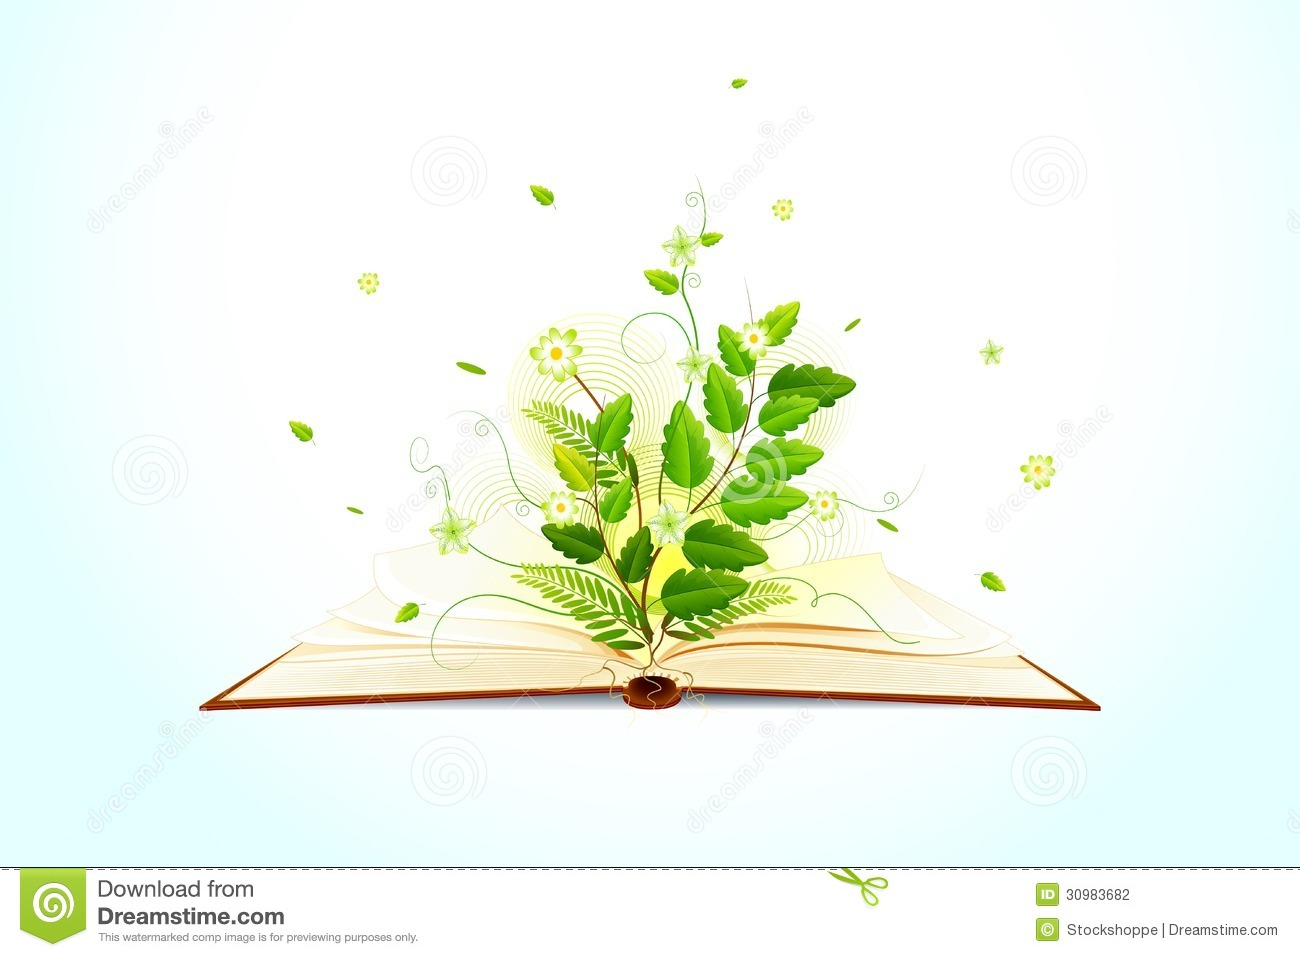 Plants Growing Out of Books